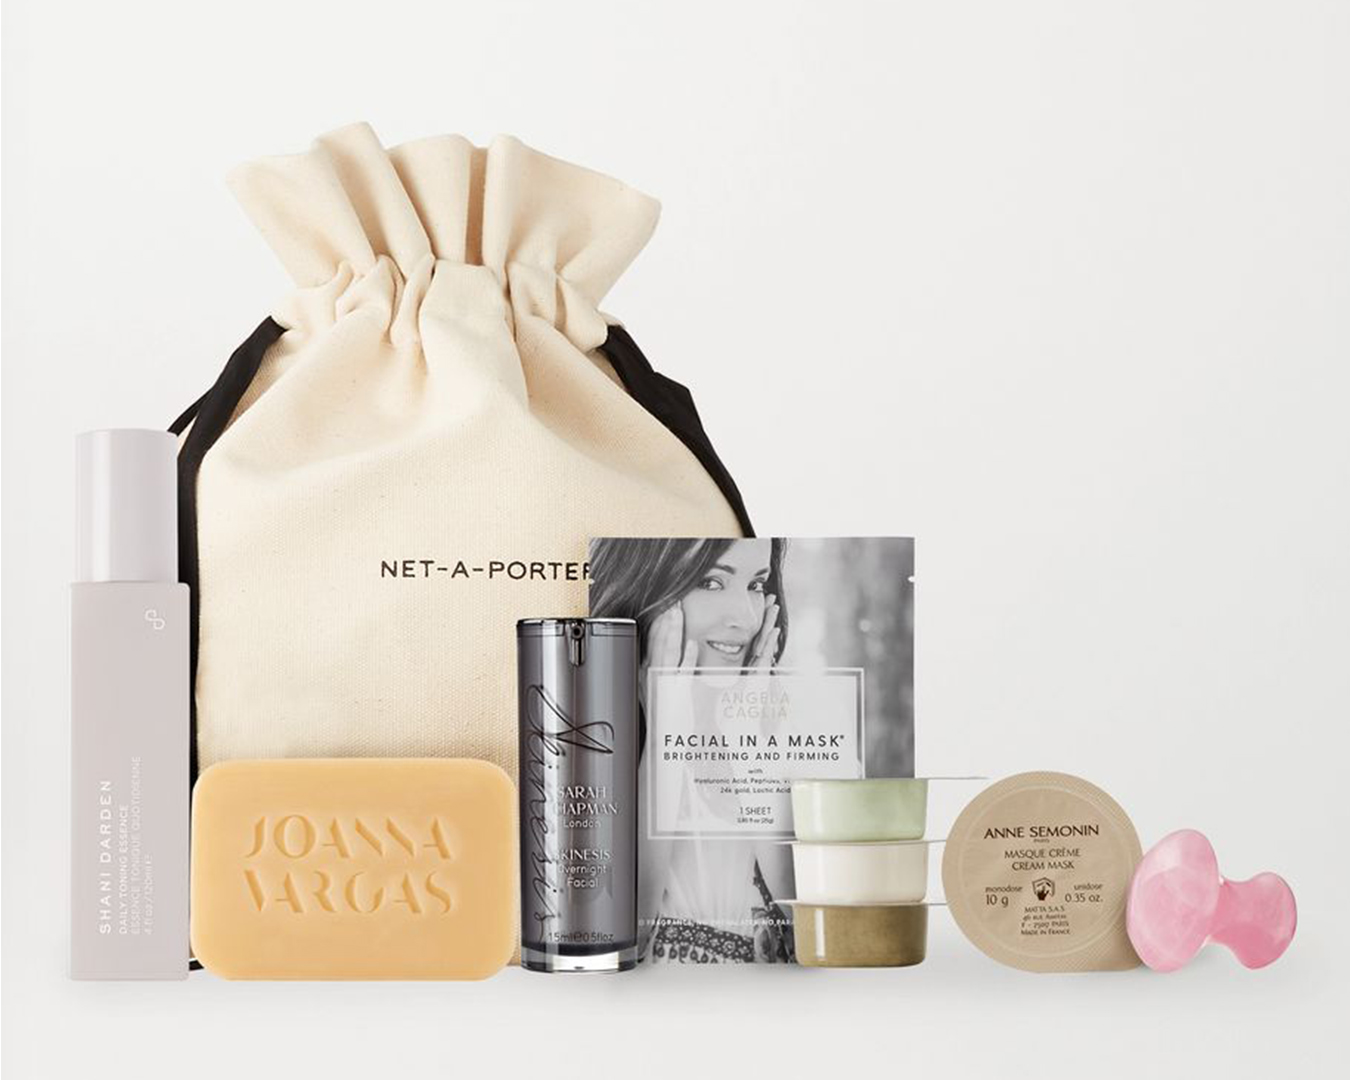 A bag sits on a table with a variety of beauty products in front of it.